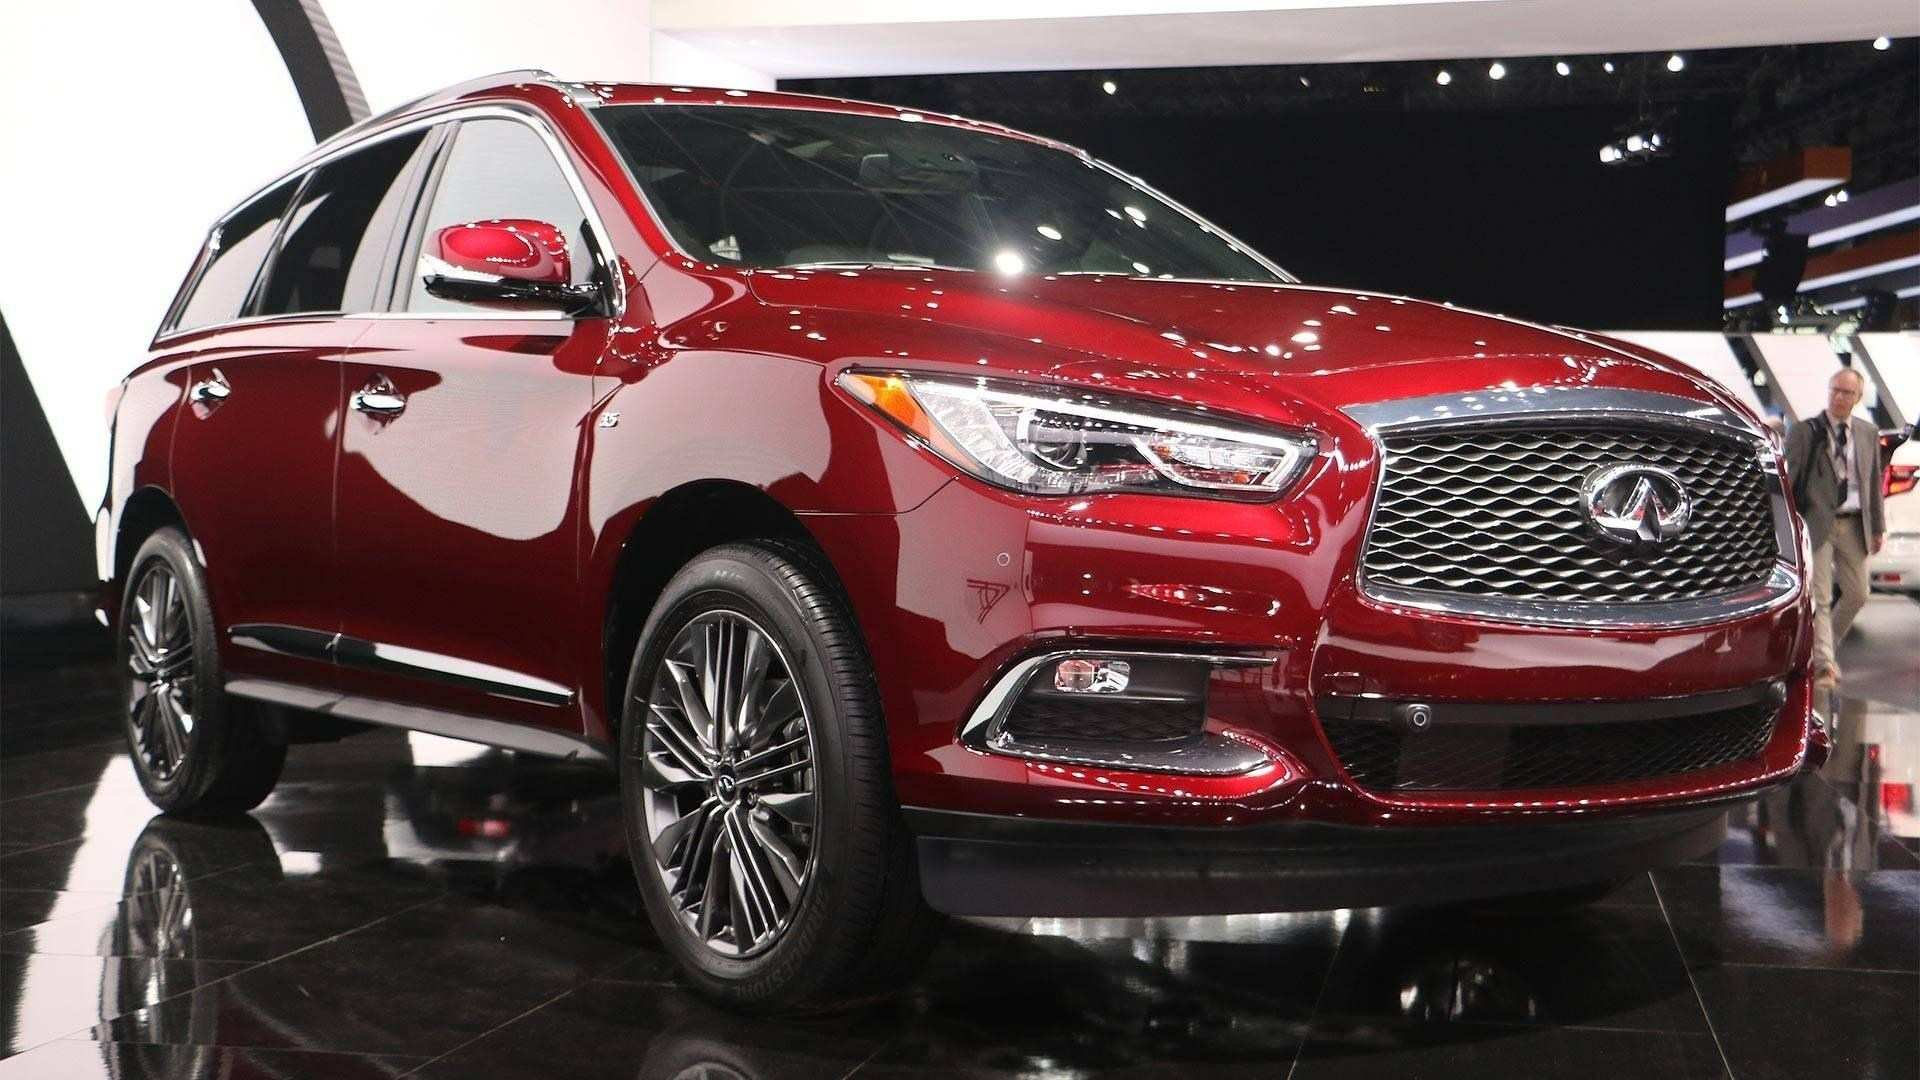 32 Great Best Infiniti 2019 Qx60 First Drive Pricing for Best Infiniti 2019 Qx60 First Drive